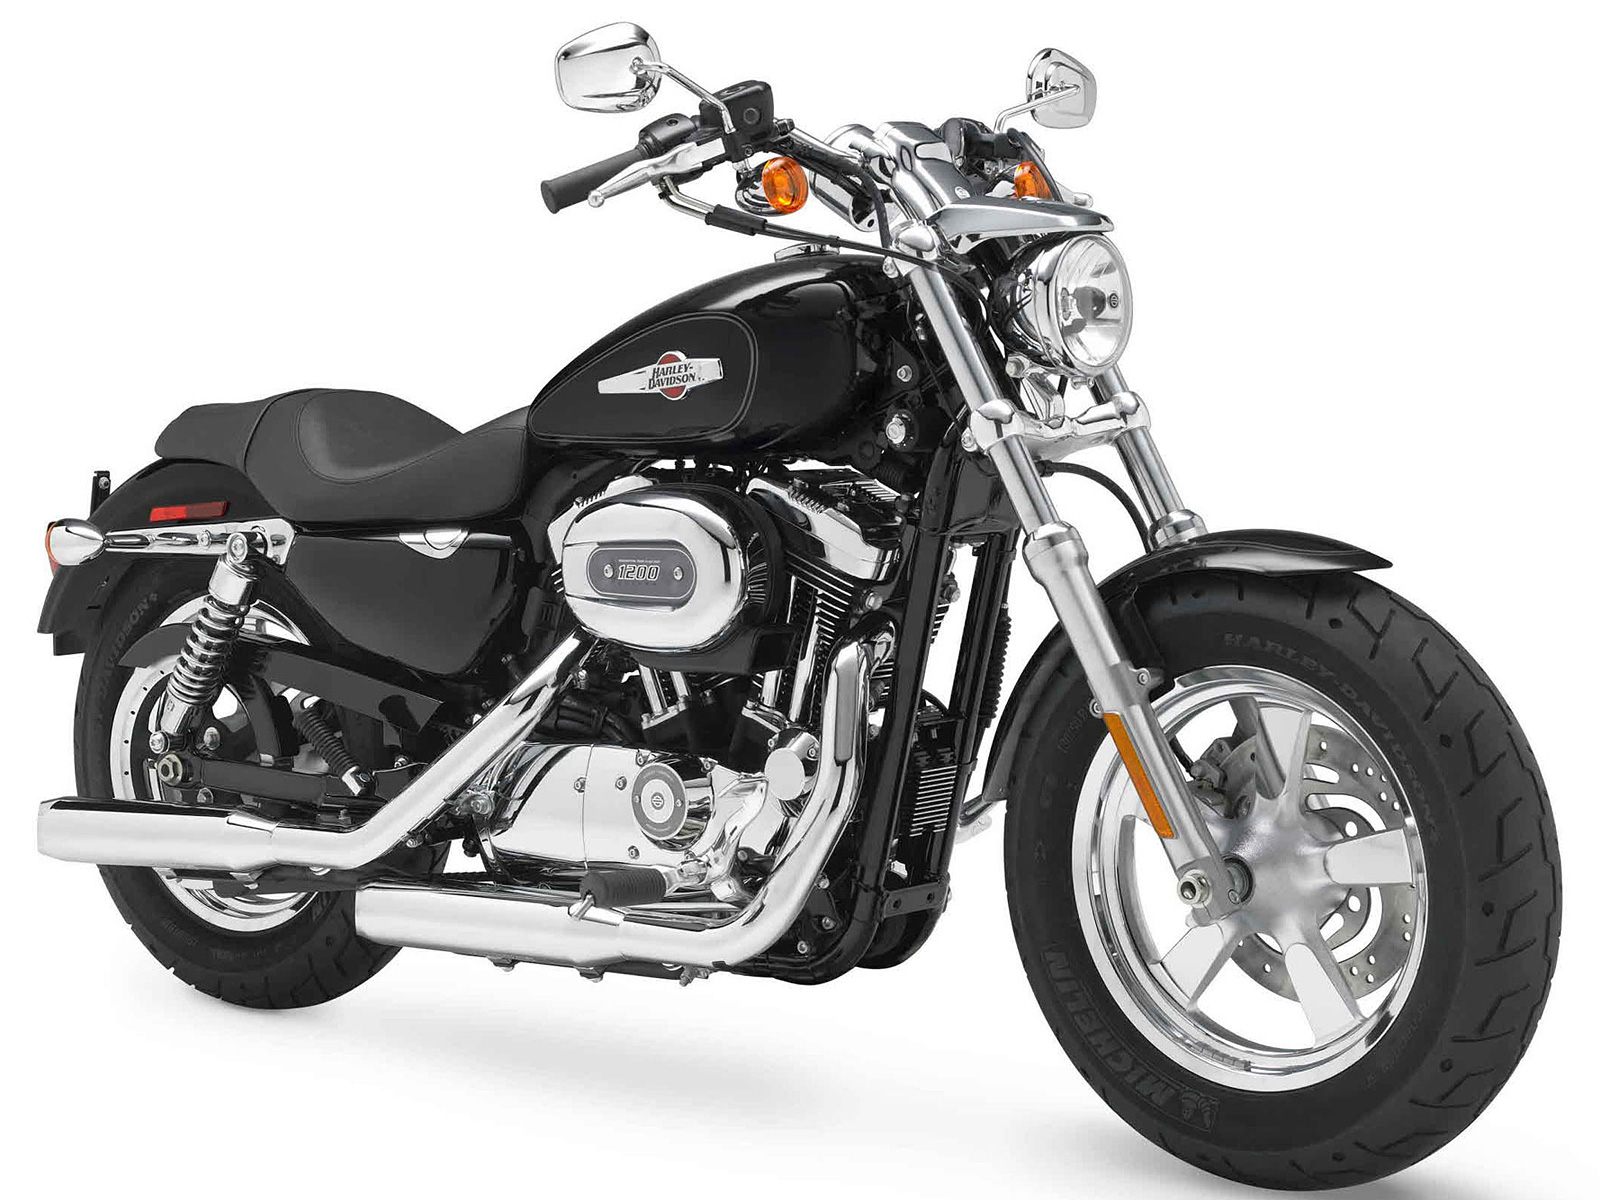 2012 Harley-Dav... Harley Davidson Wide Glide Specifications